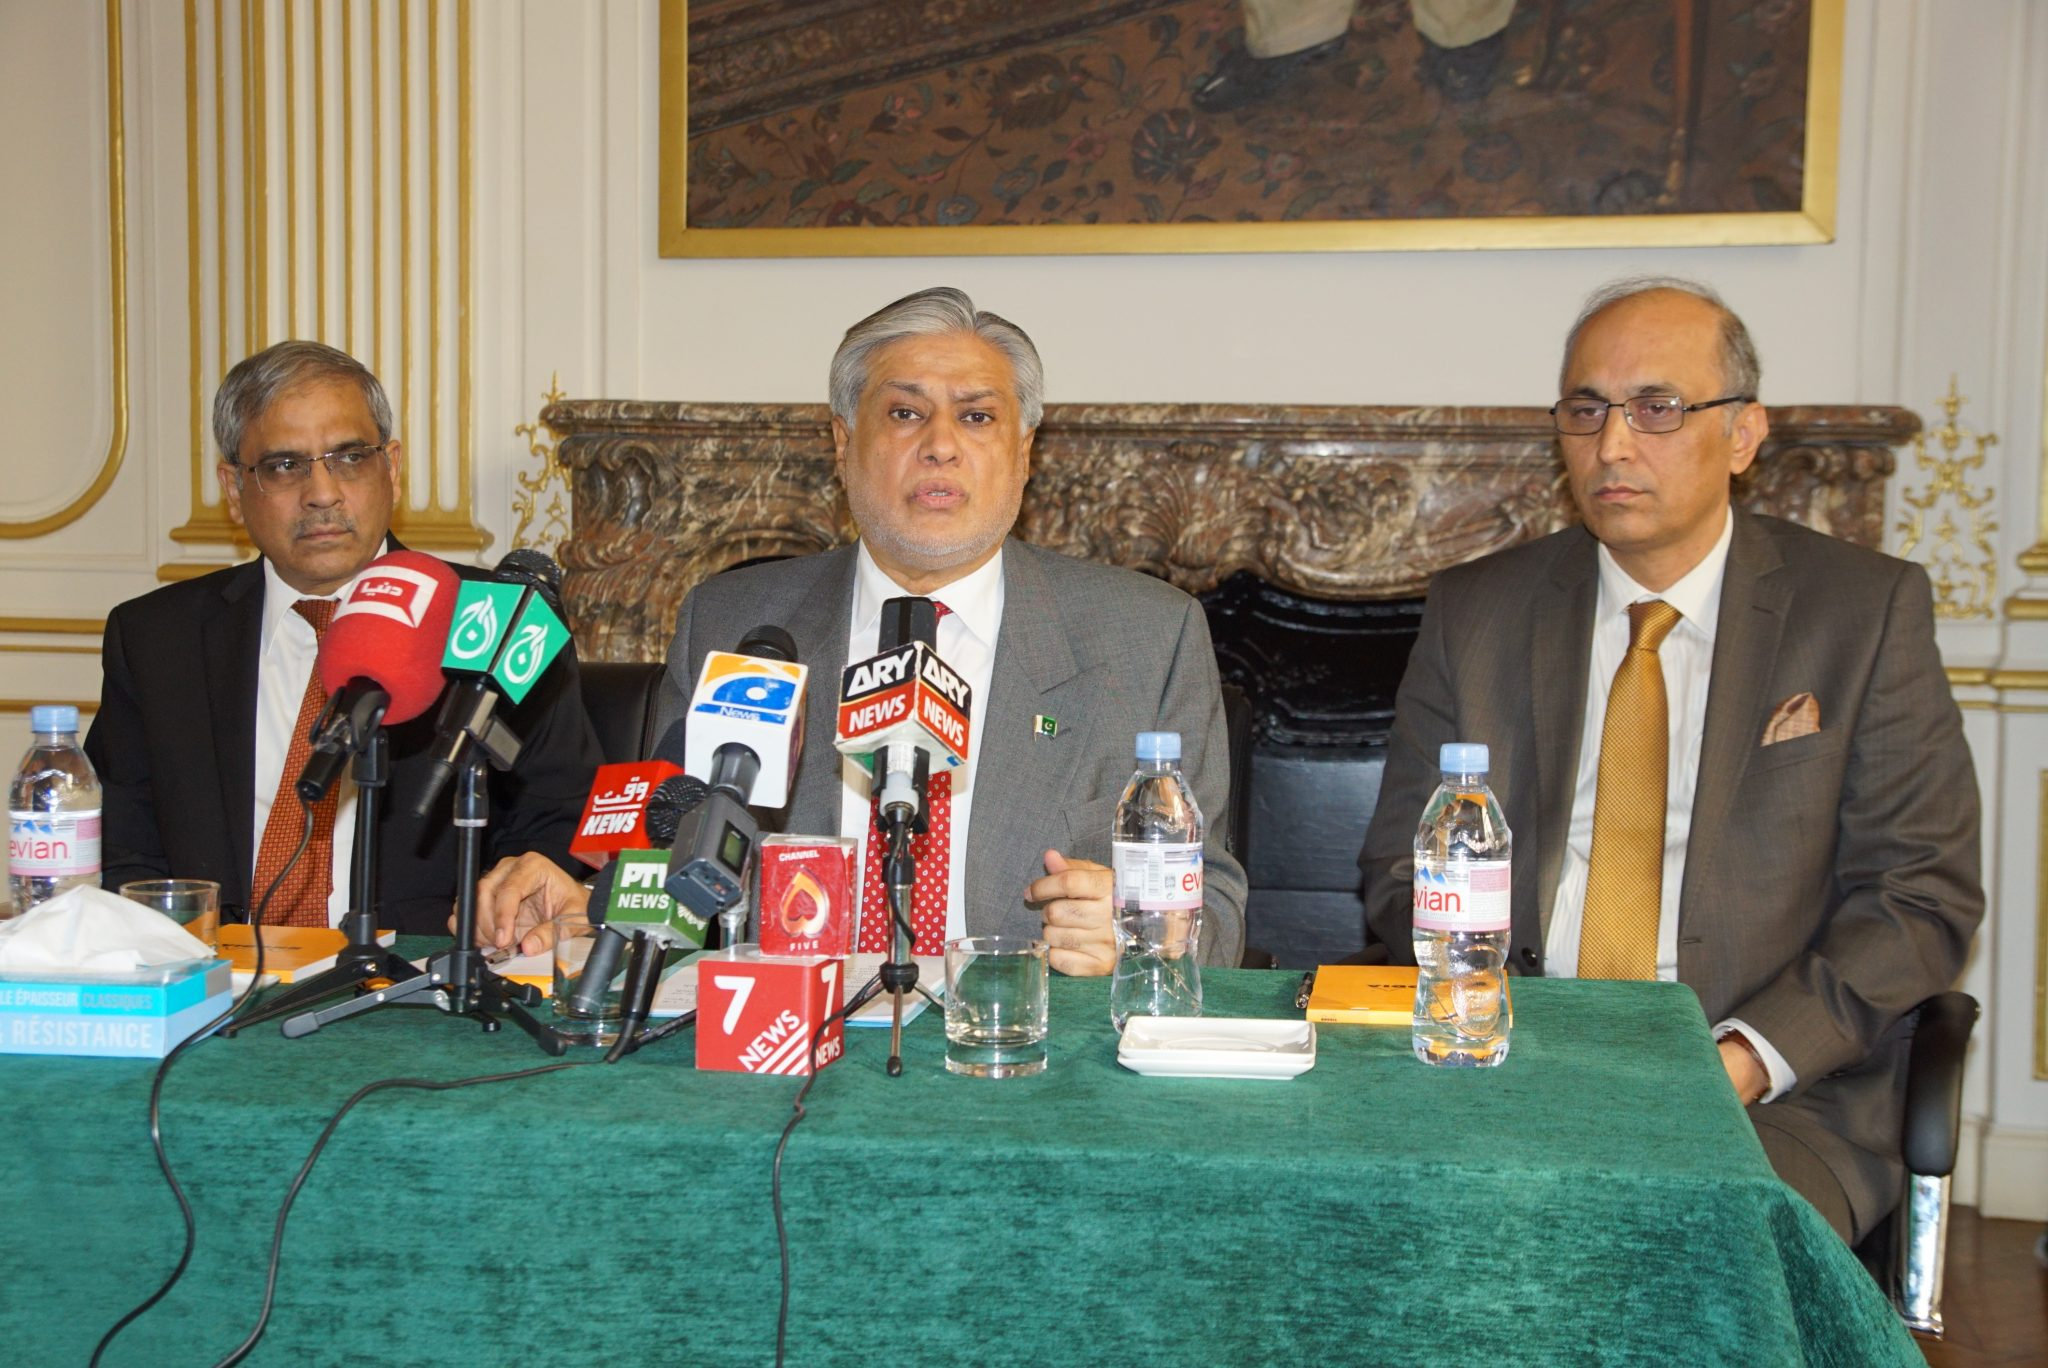 senator-mohammad-ishaq-dar-federal-minister-for-finance-and-economic-affairs-of-pakistan-is-interacted-with-french-and-pakistani-media-in-embassy-of-pakistan-9th-december-2016